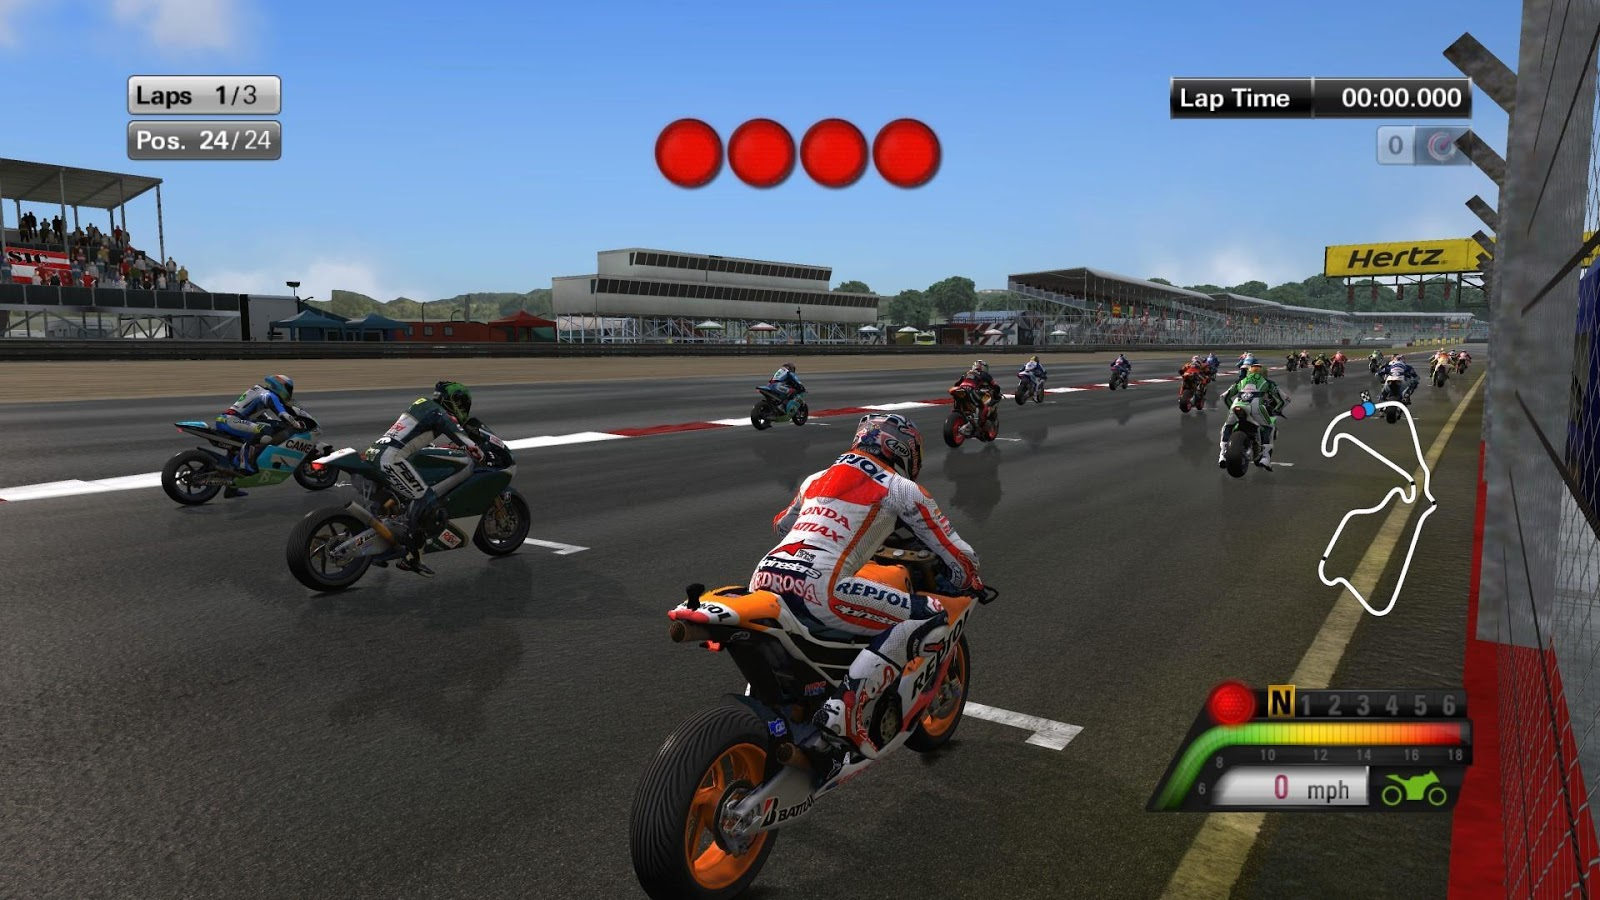 Motogp Bike Game Free Download Full Version | MotoGP 2017 Info, Video, Points Table